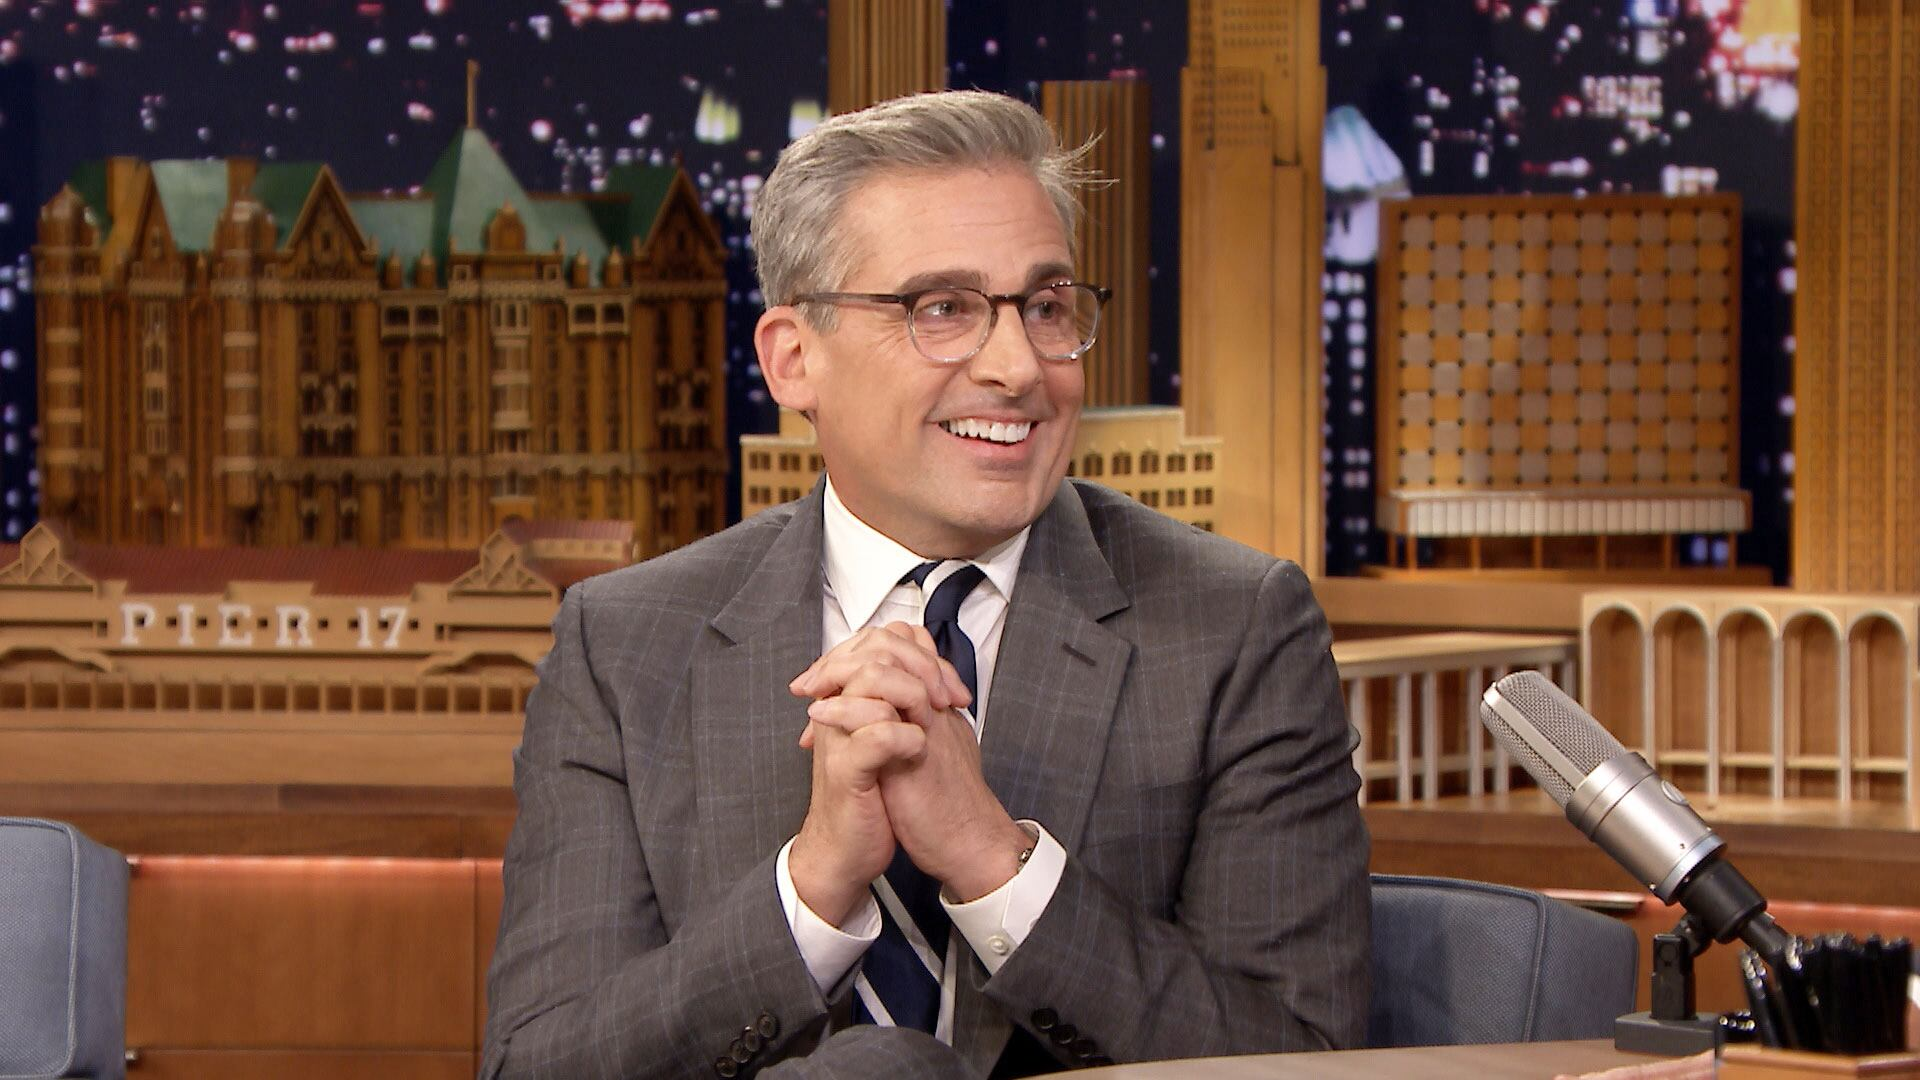 Steve Carell's '80s Fashion Was All Shoulder Pads and Balloon Pants